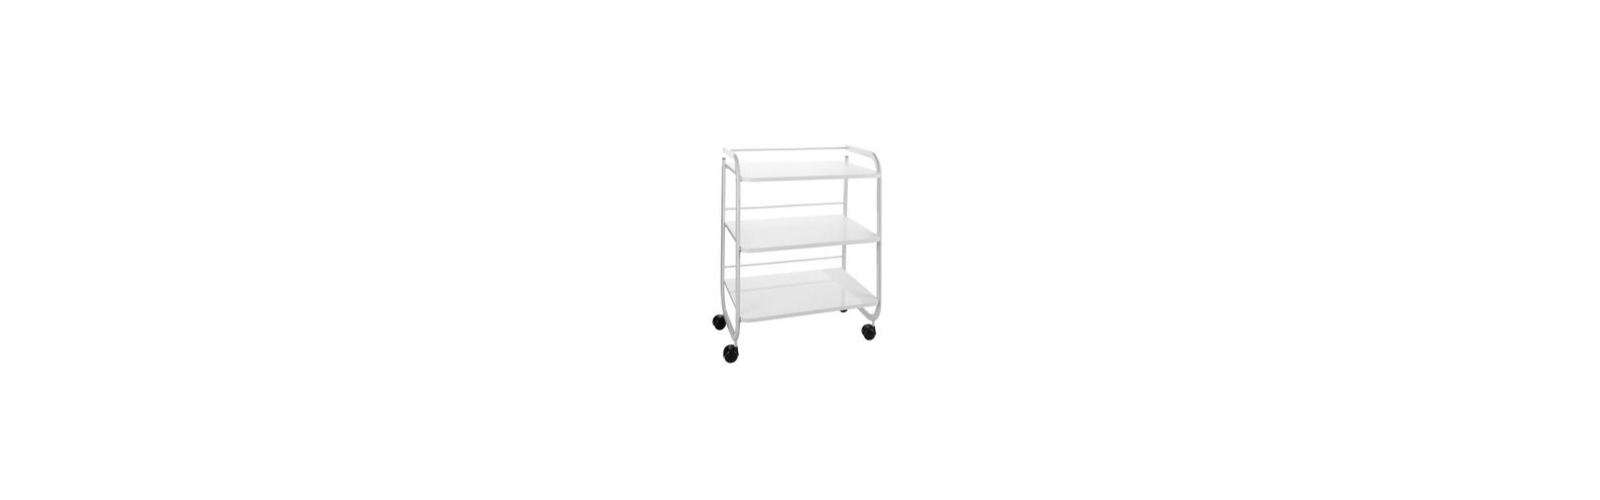 Assistant trolleys